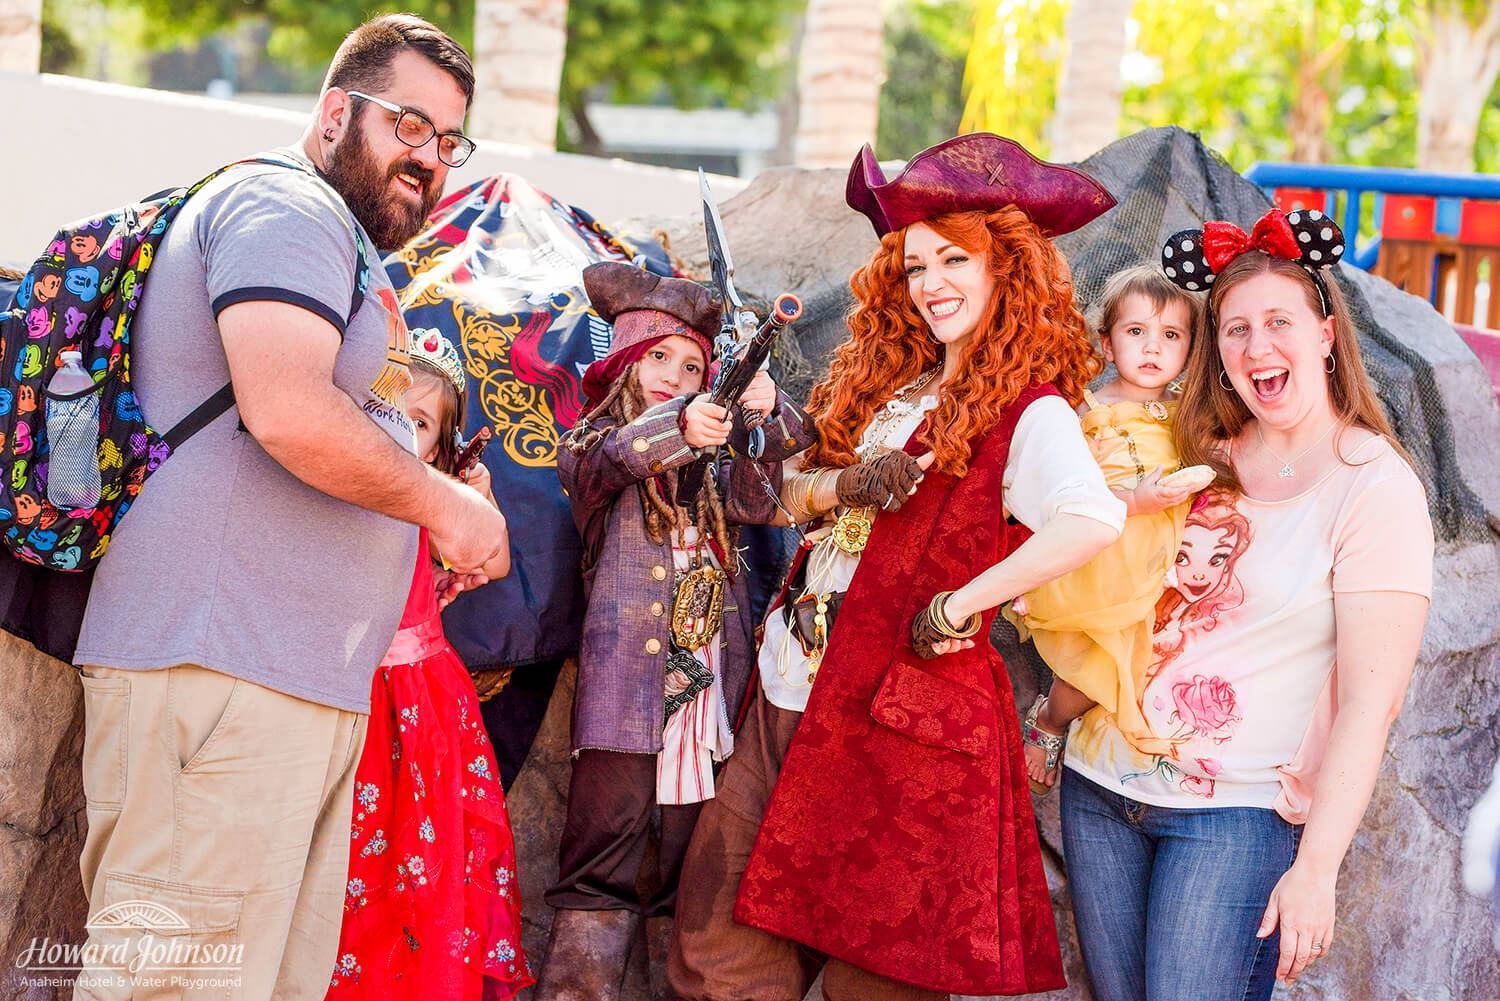 a family dressed in Disney gear poses with a woman dressed in a pirate costume